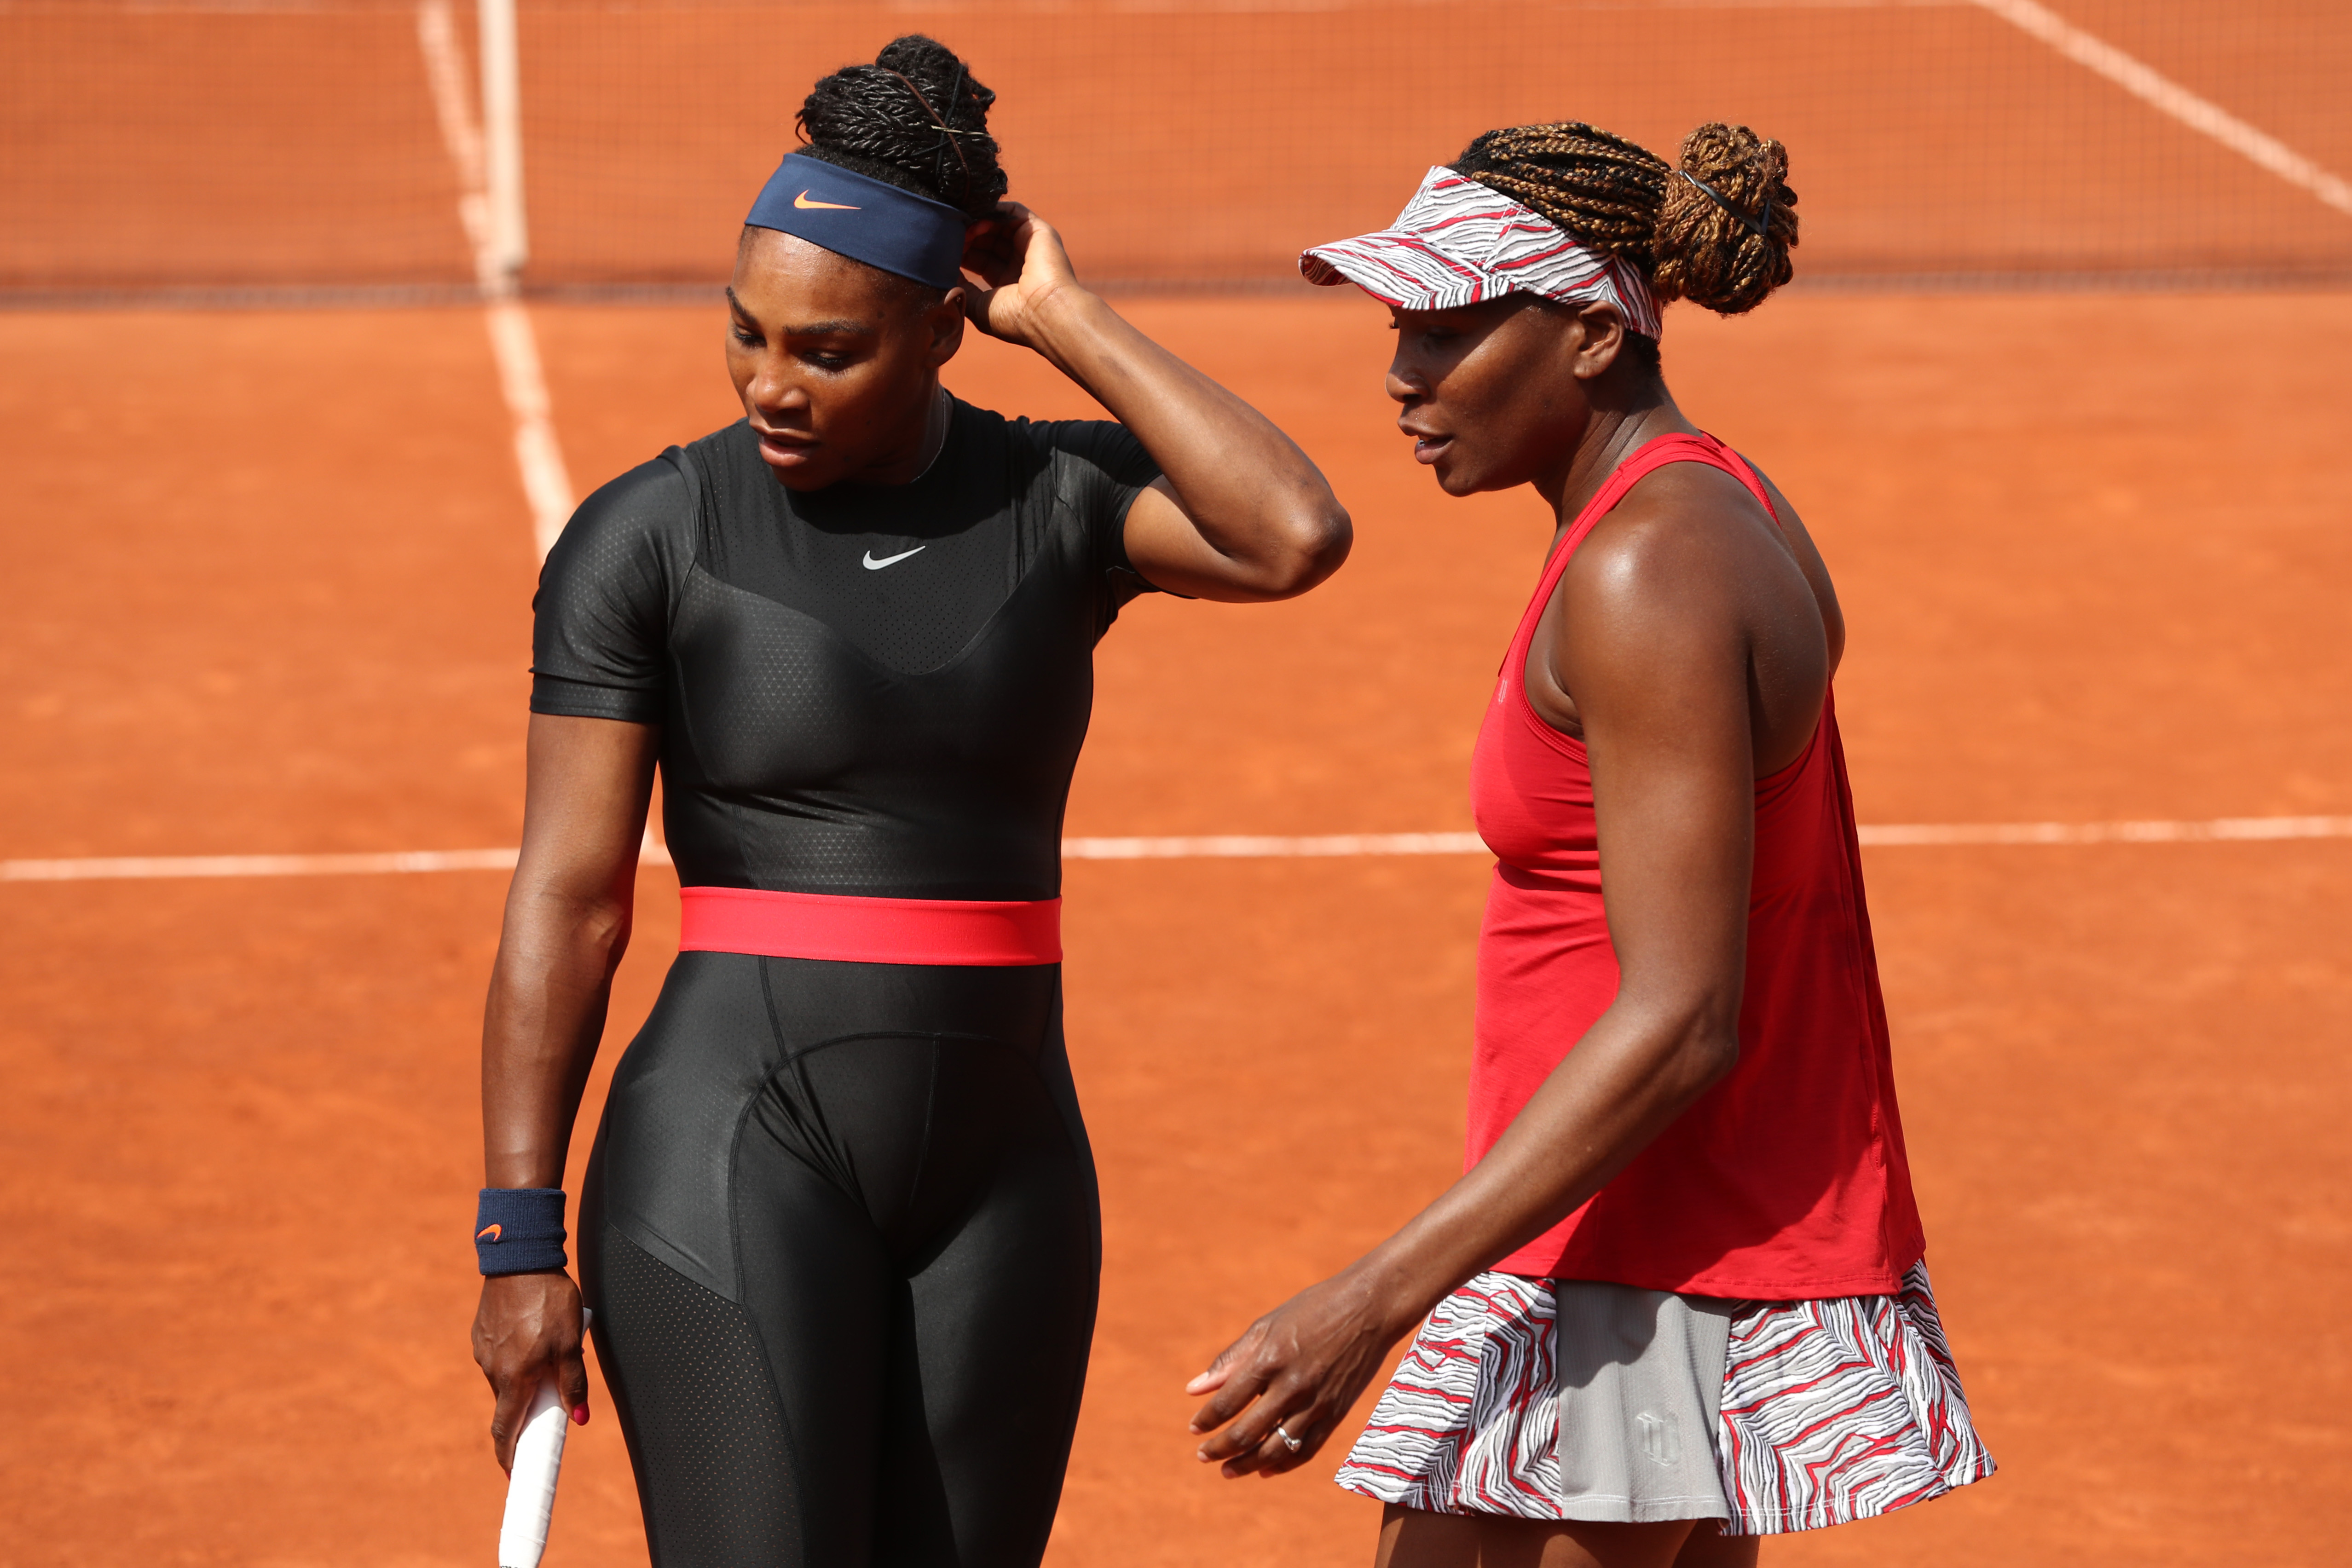 Serena Williams Says Her Daughter Olympia Inspired Her to Speak Out About Domestic Violence